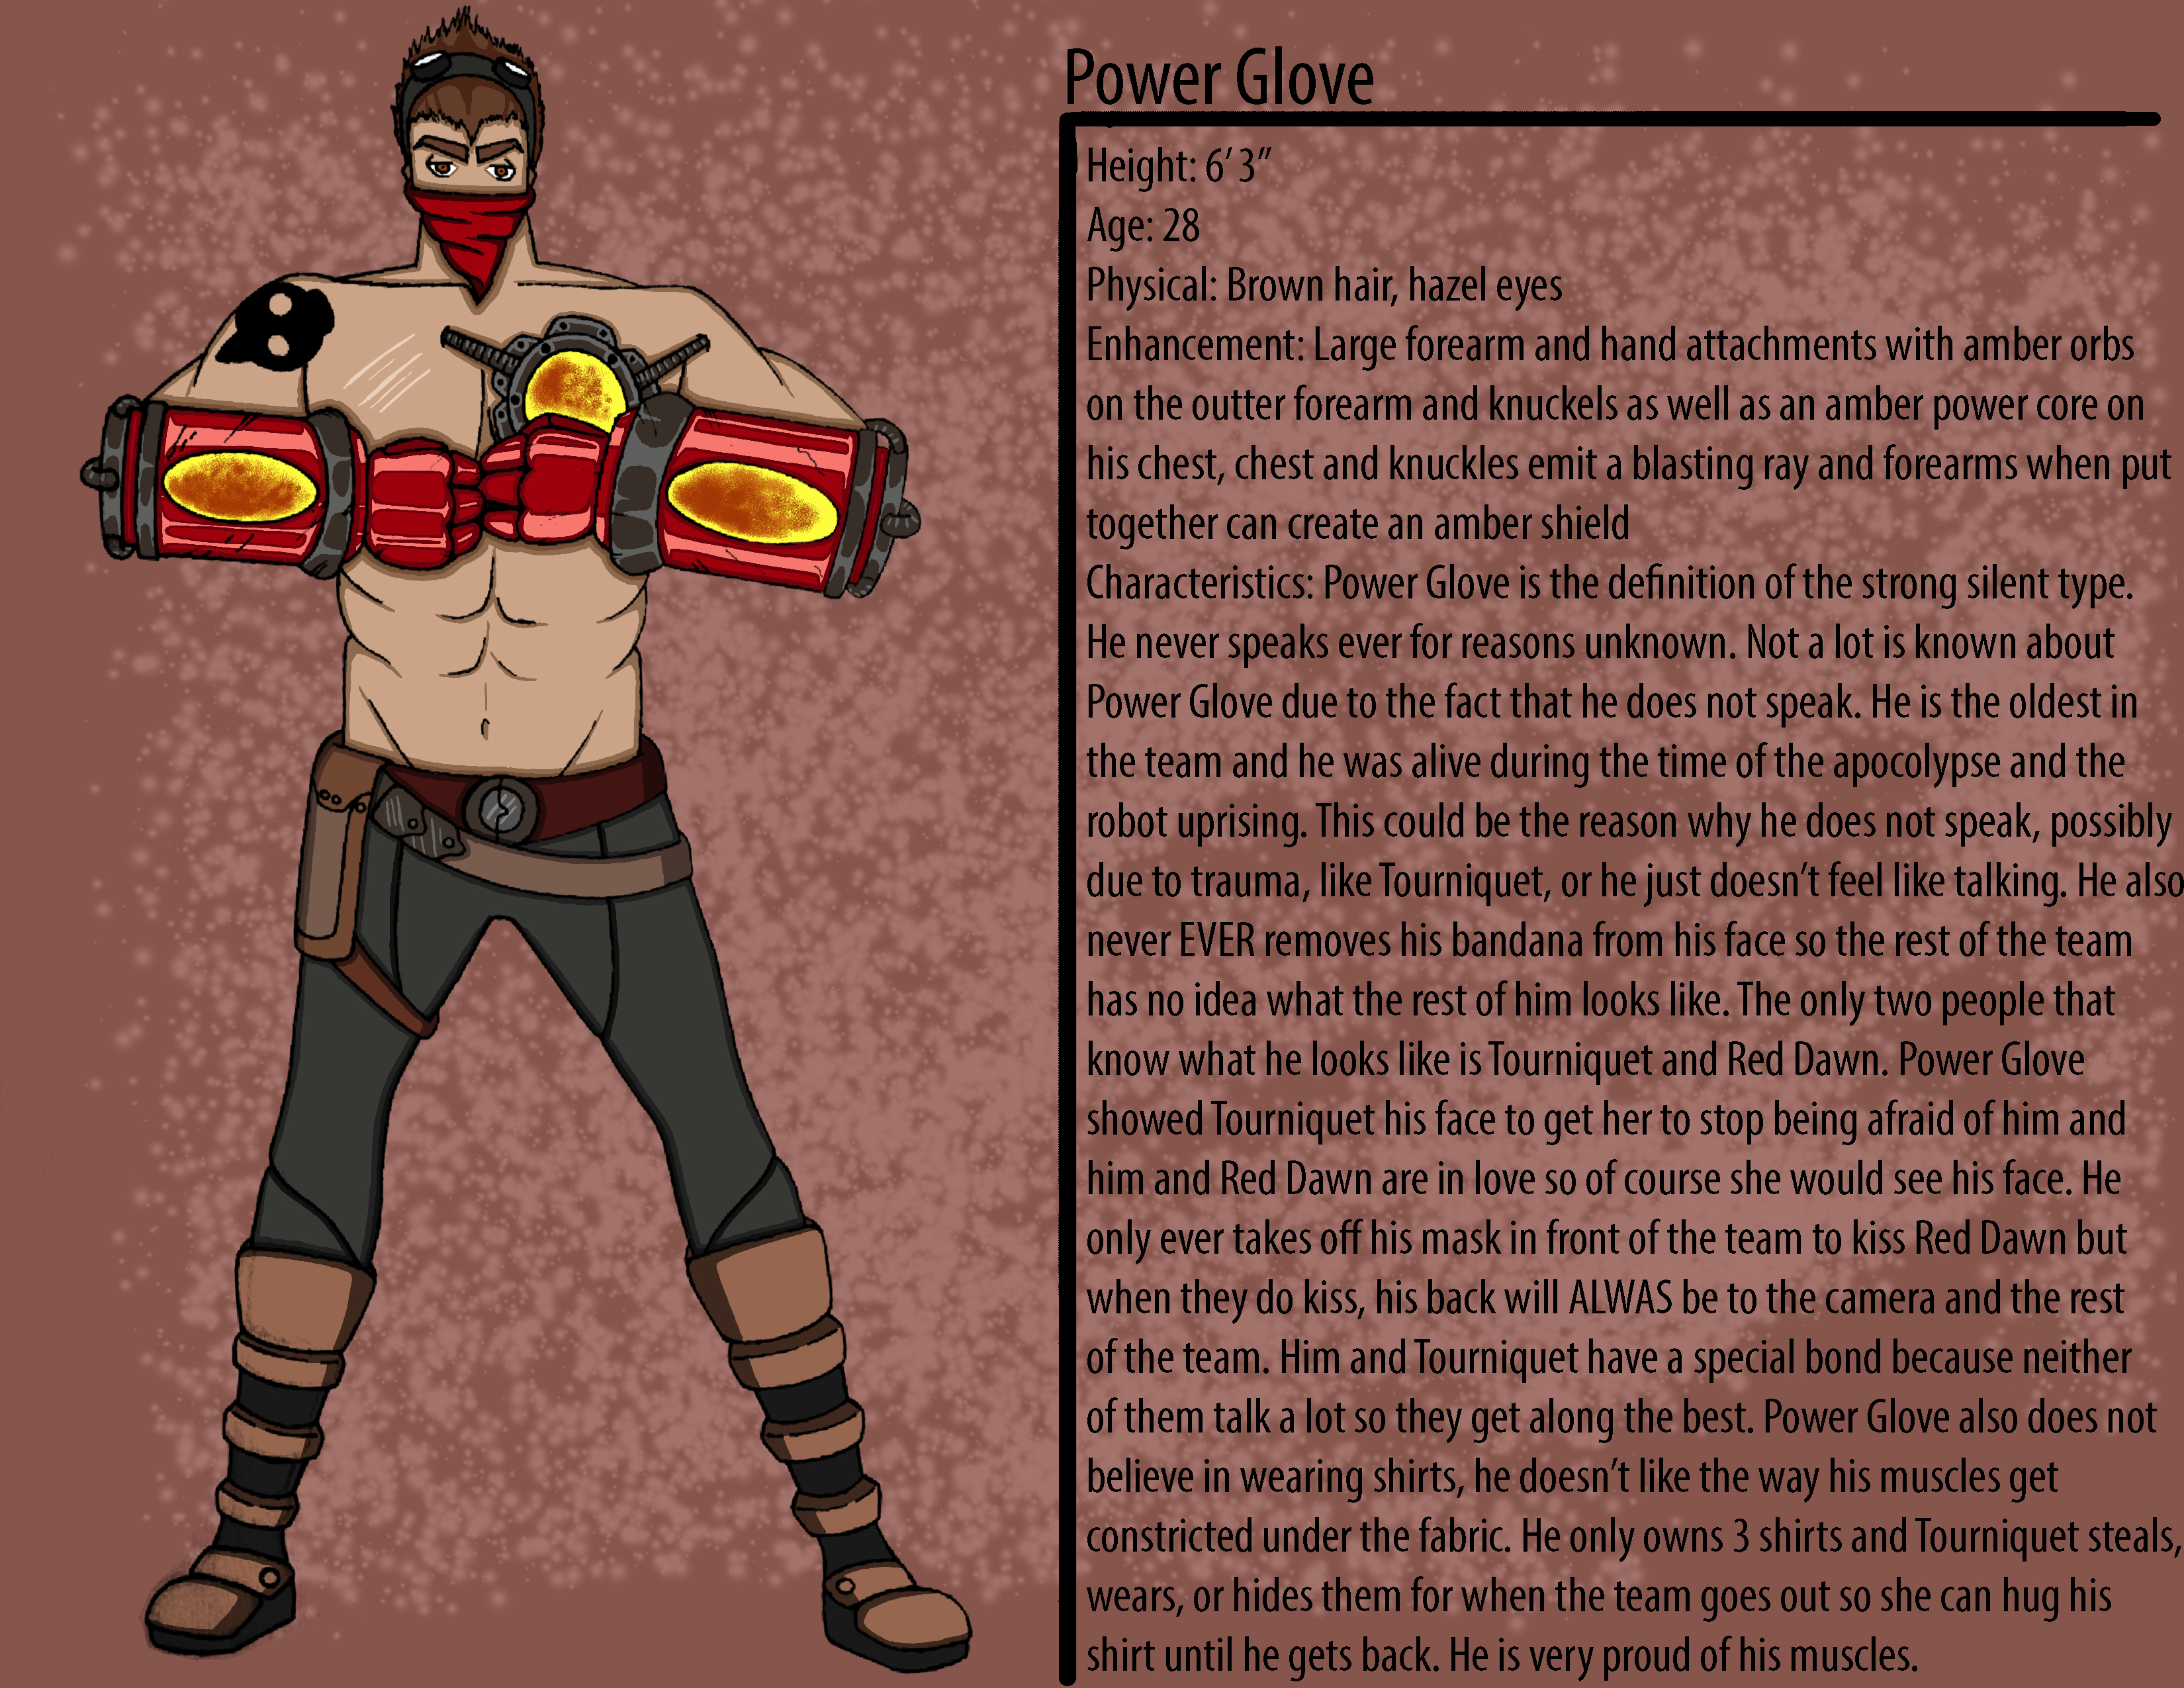 Power Glove Character Description